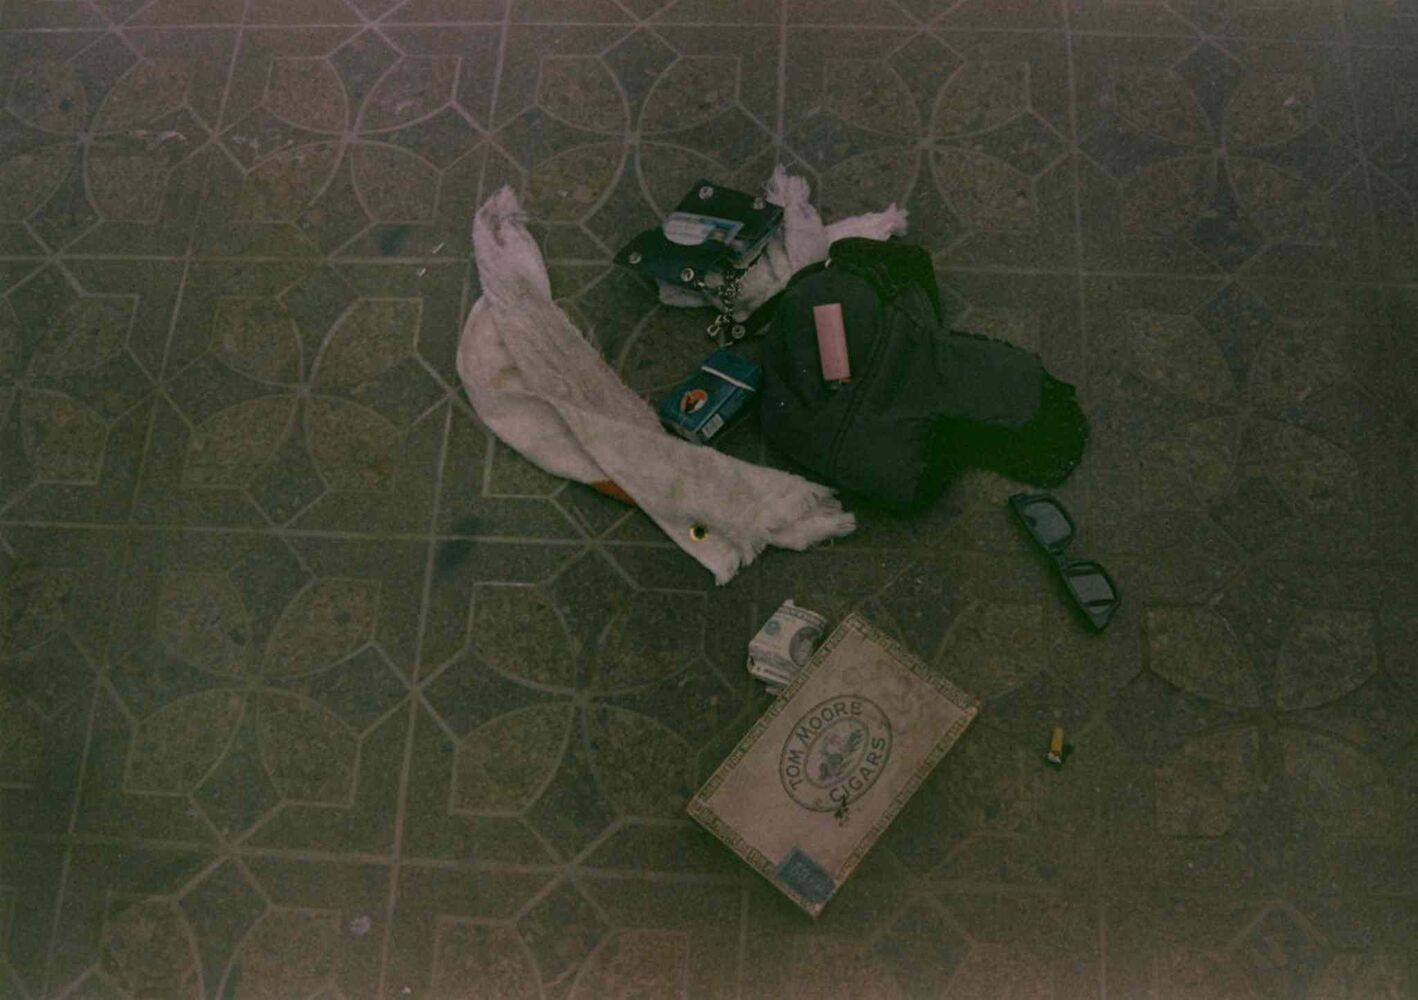 Seattle Police released in March 2014 two new photographs from the scene where Kurt Cobain's body was found in 1994. One photograph shows a cigar box on the floor near Cobain's body, as well as cash, a woolly hat and an open wallet displaying the singer's ID. (Seattle Police Department)